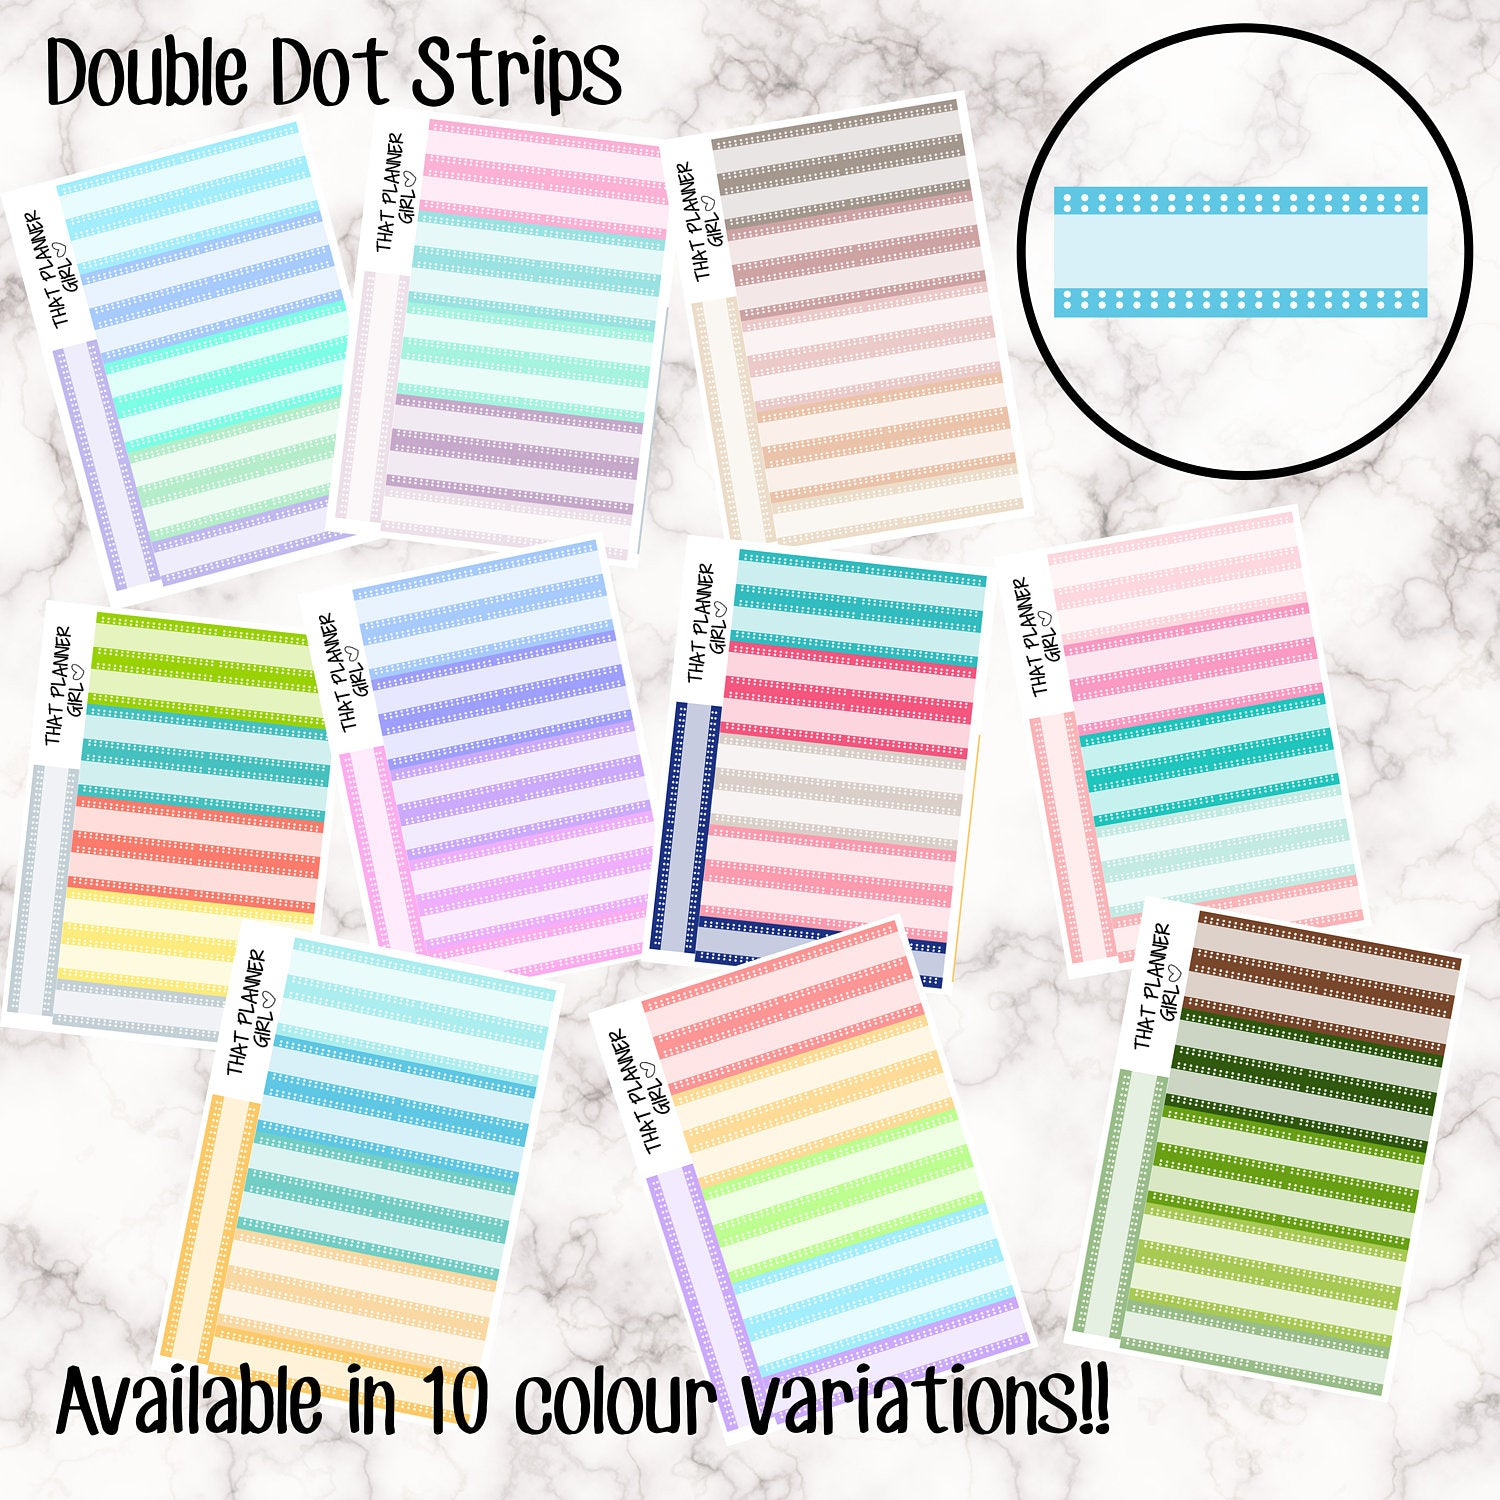 Double Dot Strips